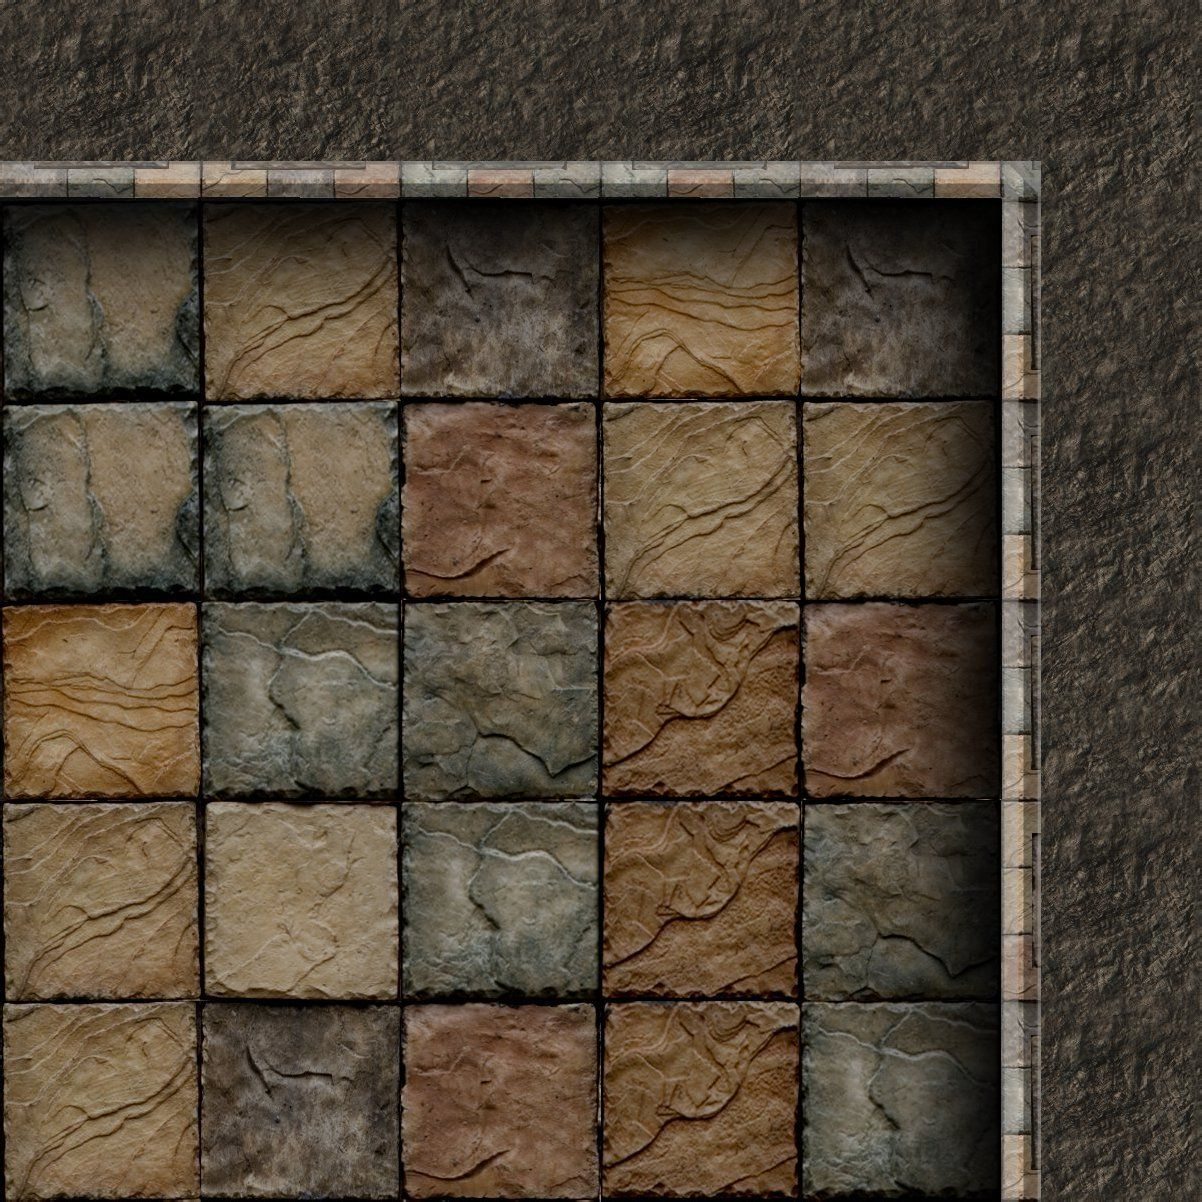 photo regarding Printable Dungeon Tiles known as 20+ Dungeon Ground Tiles Images and Options upon Weric